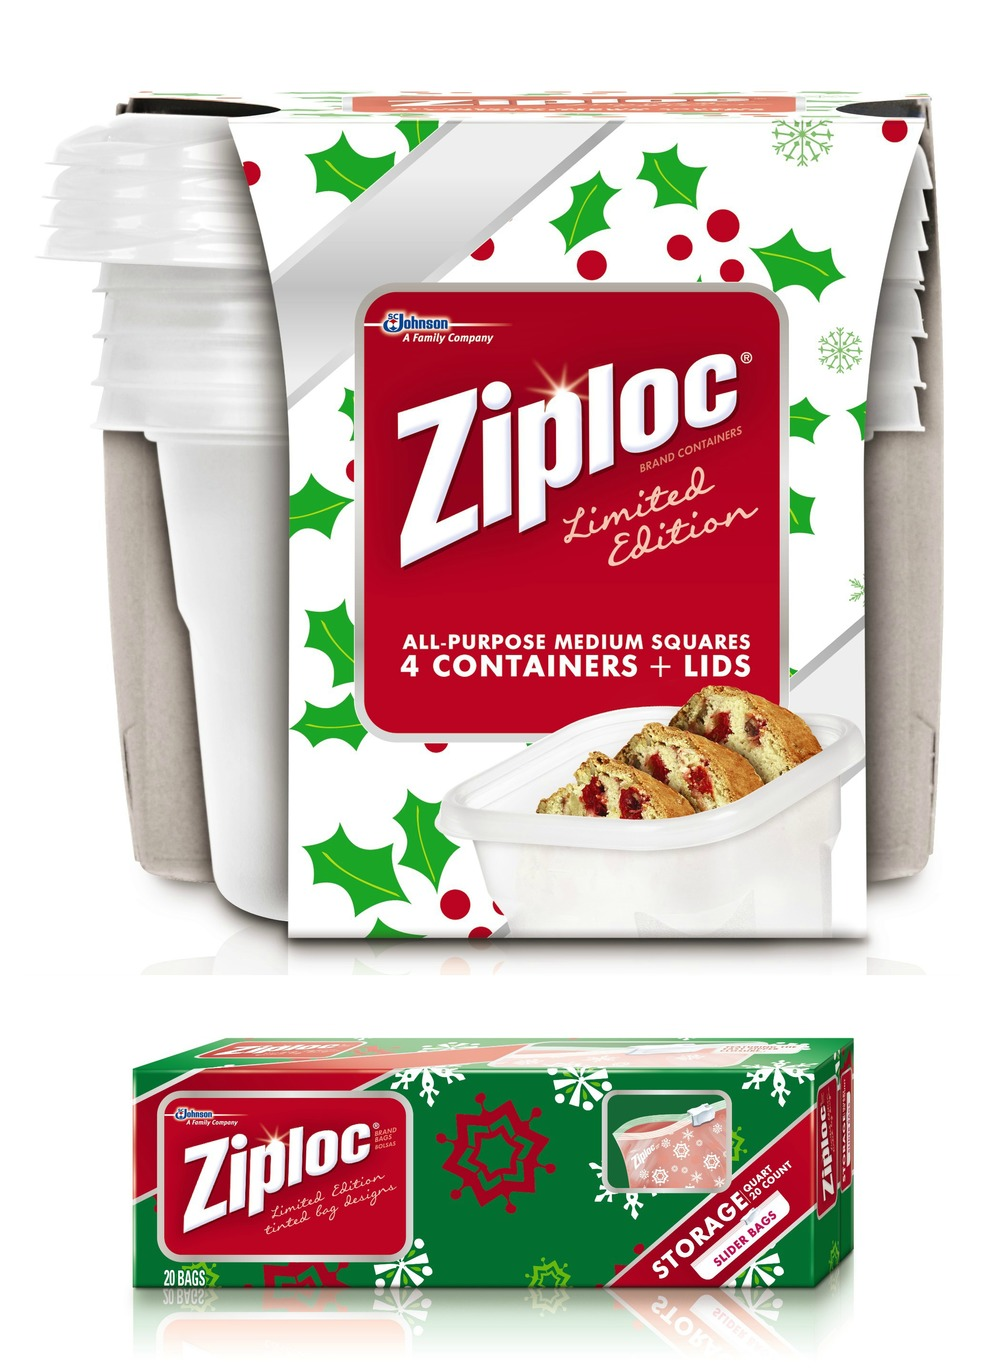 Ziploc Container Bags holiday limited edition collection